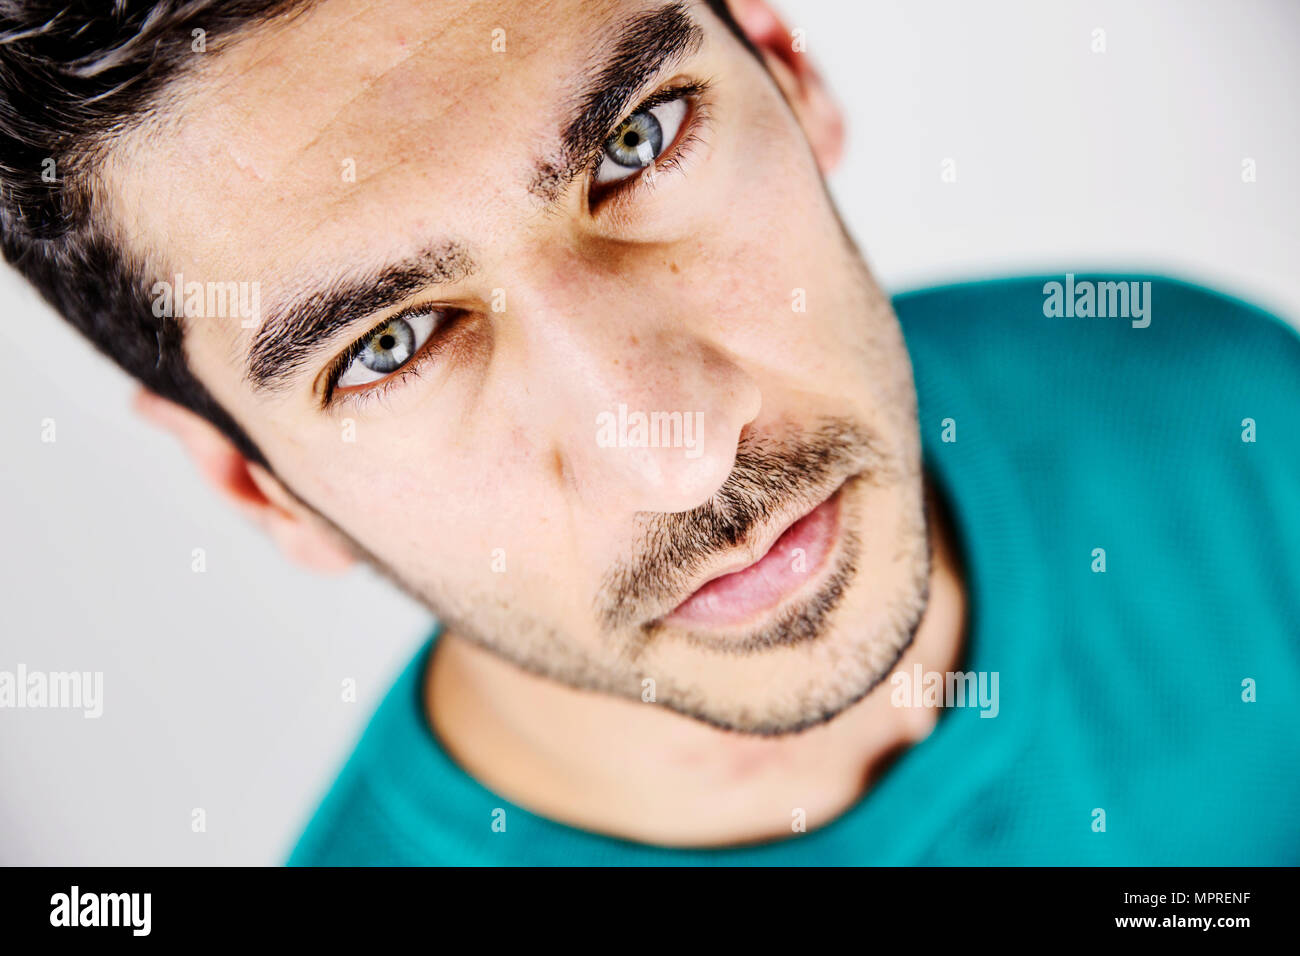 Portrait of serious young man with blue eyes and stubble - Stock Image